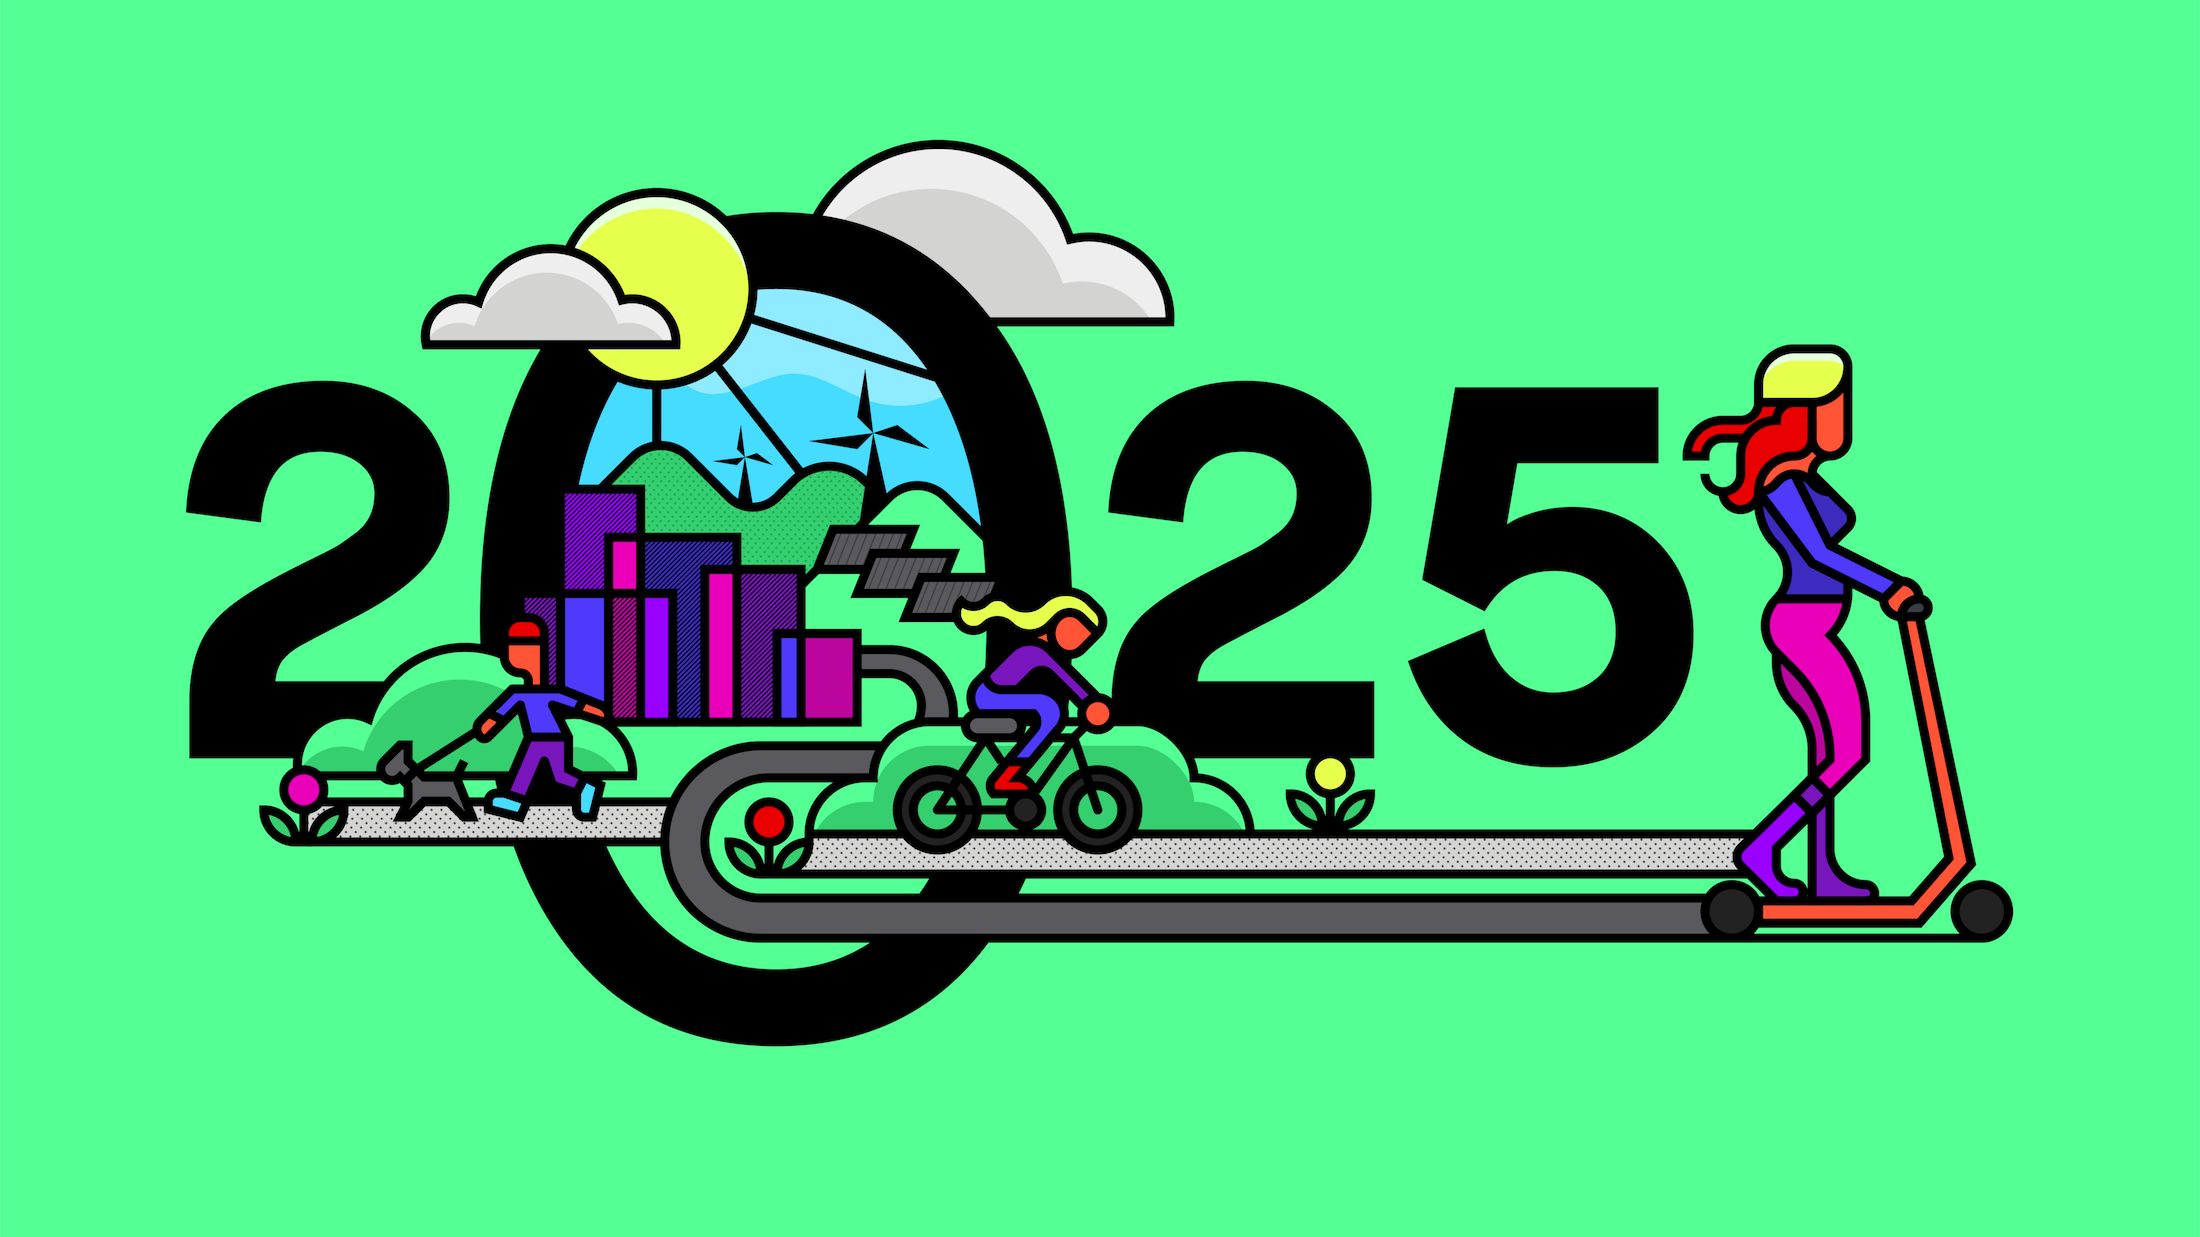 A drawing of the number 2025 with images of nature, a person walking a dog, a person biking, and a person on a scooter.